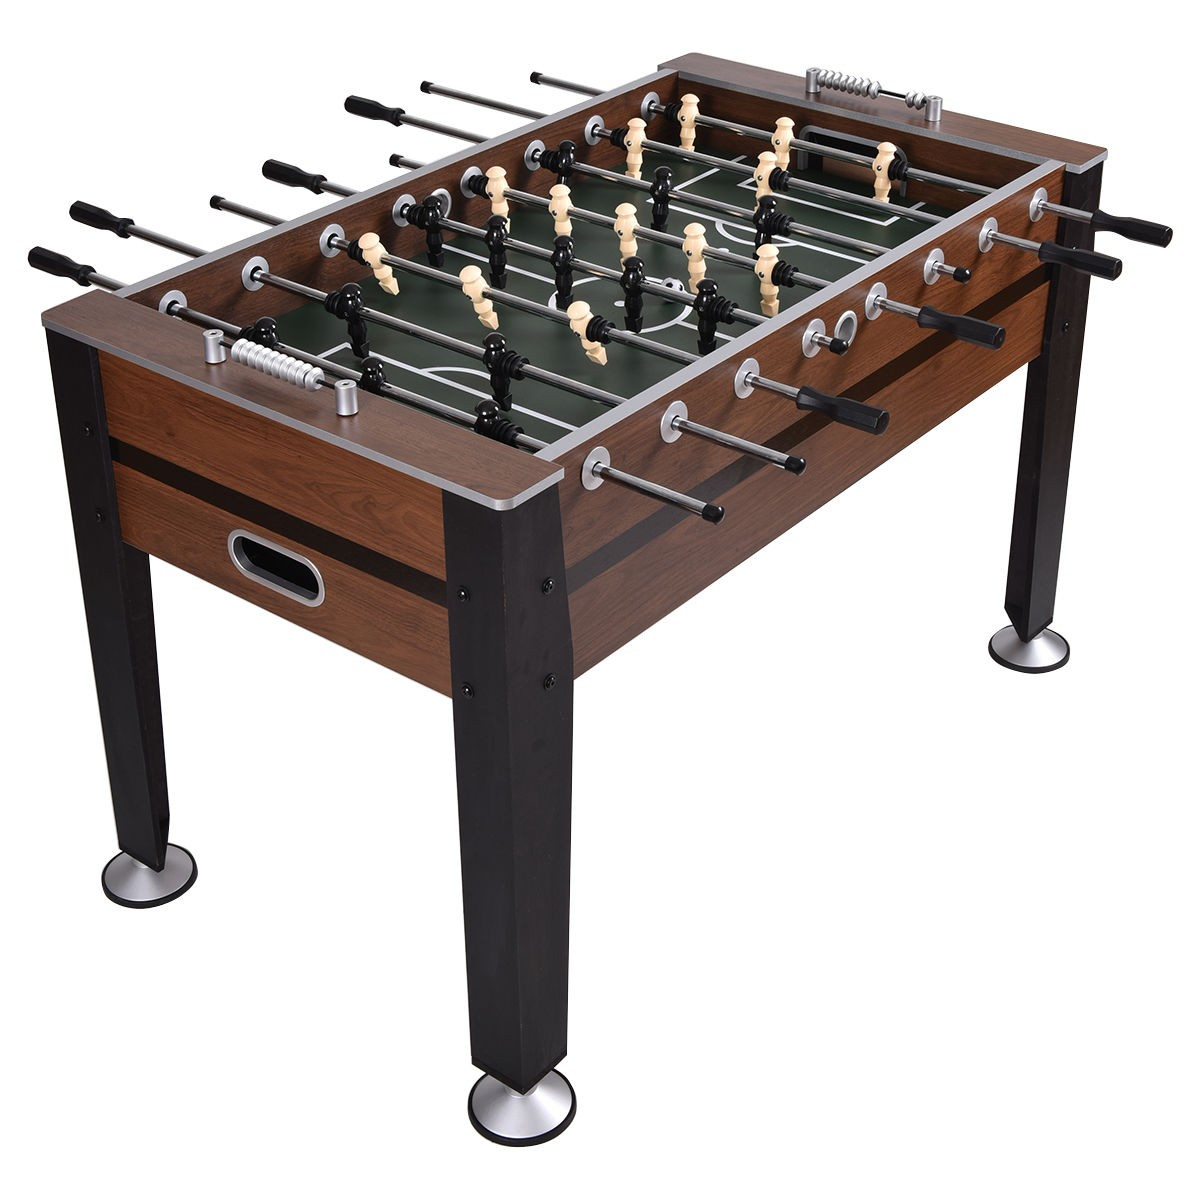 54 In. Indoor Competition Game Soccer Table